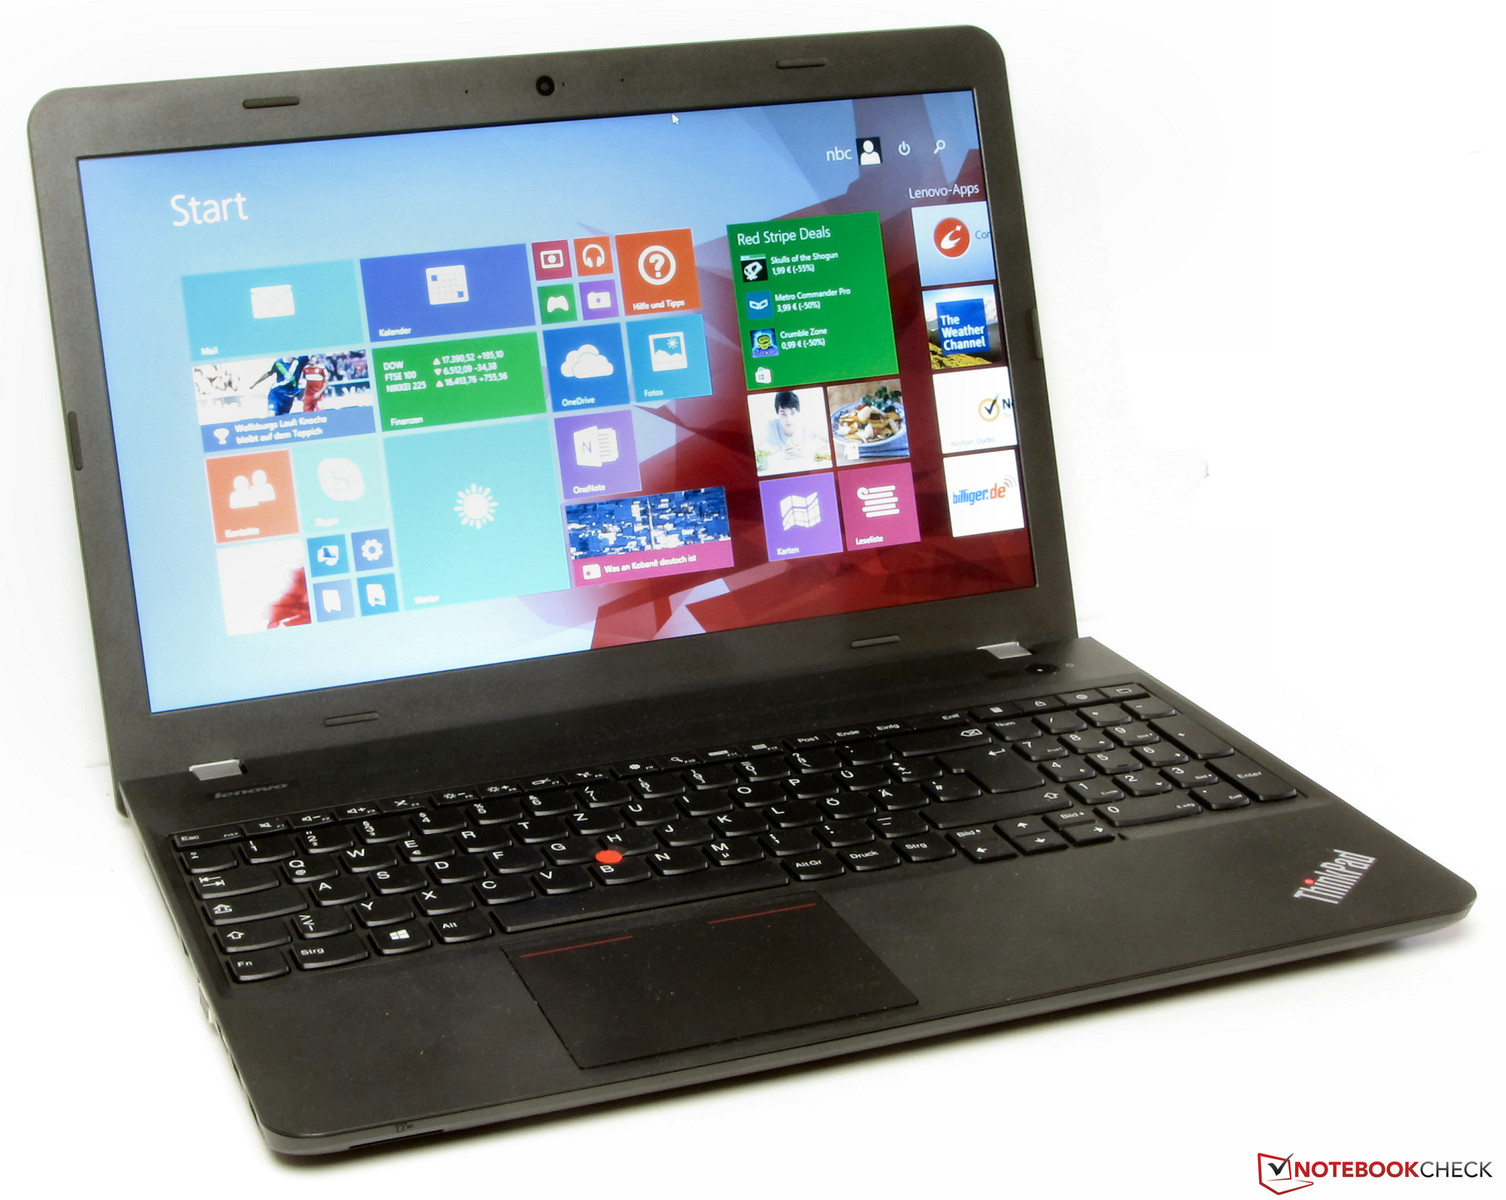 Lenovo ThinkPad Edge E535 AMD USB 3.0 Controller Drivers for Windows 7